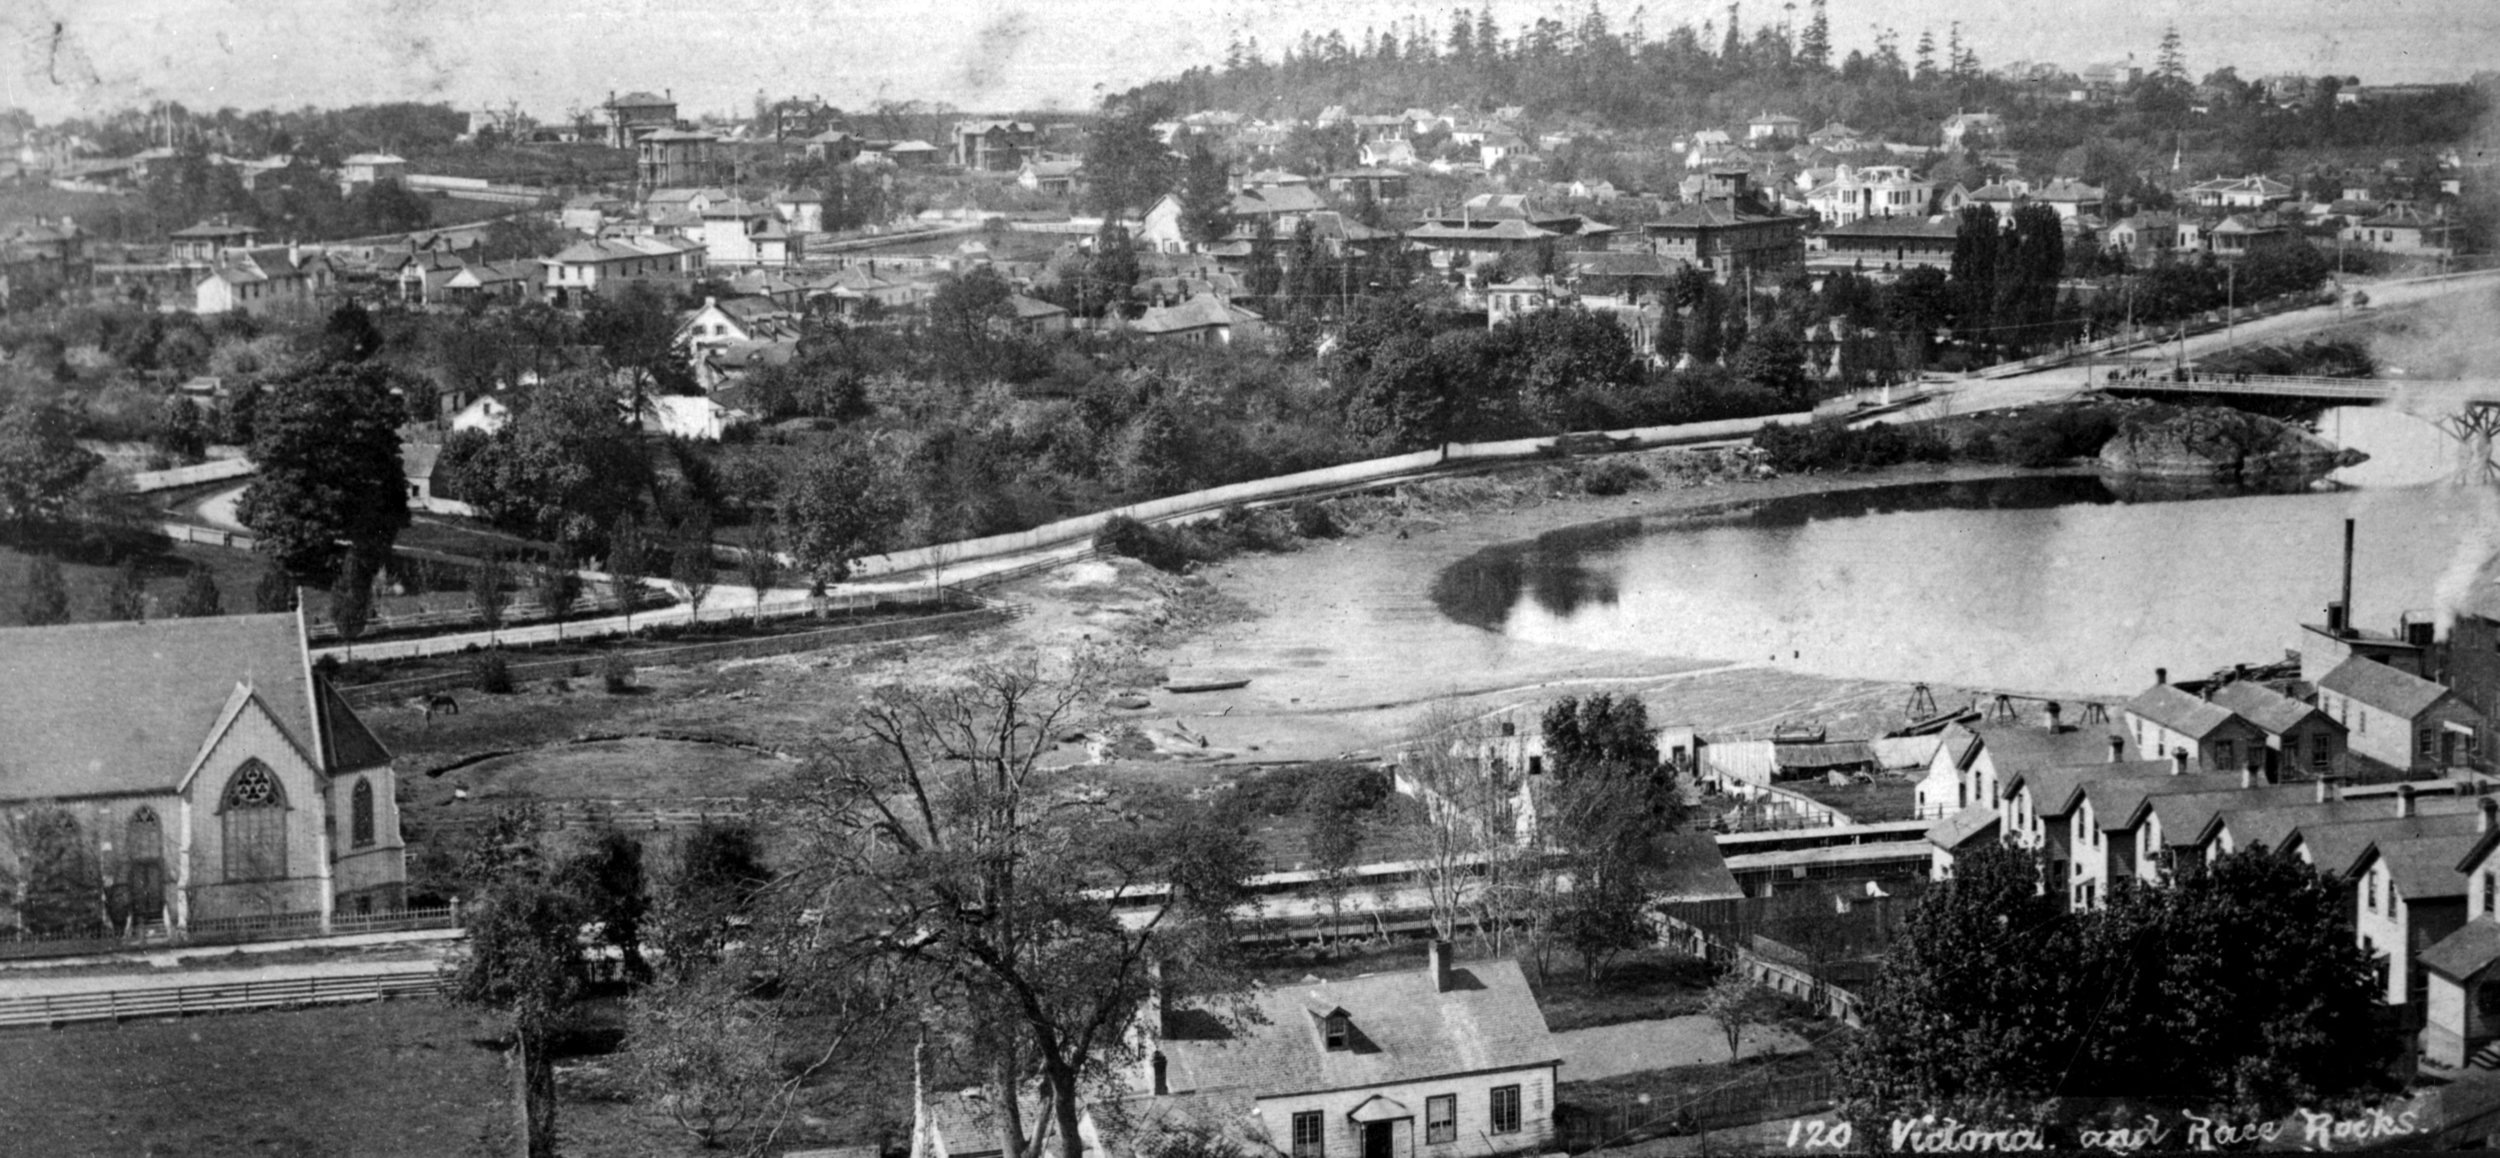 View of Victoria from Church Hill, looking southwest towards James Bay; Church of Our Lord at left, Birdcages across the James Bay mudflats. Image courtesy of the Royal B.C. Museum - B.C. Archives